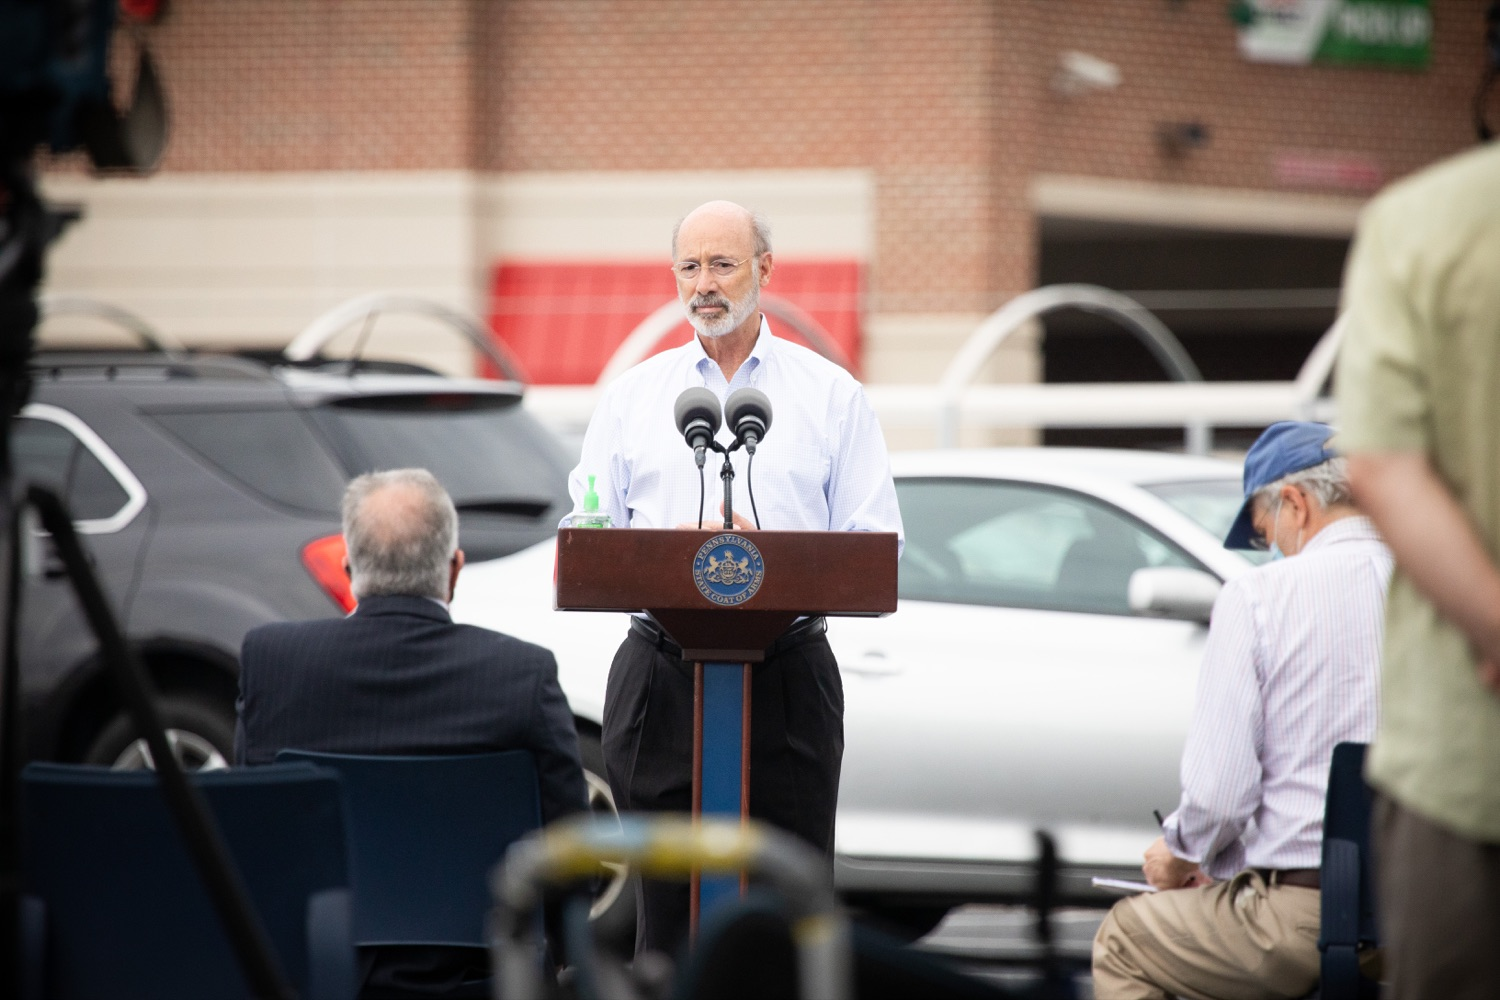 """<a href=""""https://filesource.wostreaming.net/commonwealthofpa/photo/18166_gov_cares_act_dz_09.jpg"""" target=""""_blank"""">⇣Download Photo<br></a>Pennsylvania Governor Tom Wolf speaking to reporters at the announcement. Today, Governor Tom Wolf announced the availability of $50 million in grant funding to help employers provide hazard pay to employees in life-sustaining occupations during the COVID-19 pandemic. Hazard pay is intended to keep front-line employees working in vital industry sectors across Pennsylvania.  Harrisburg, PA  July 16, 2020"""